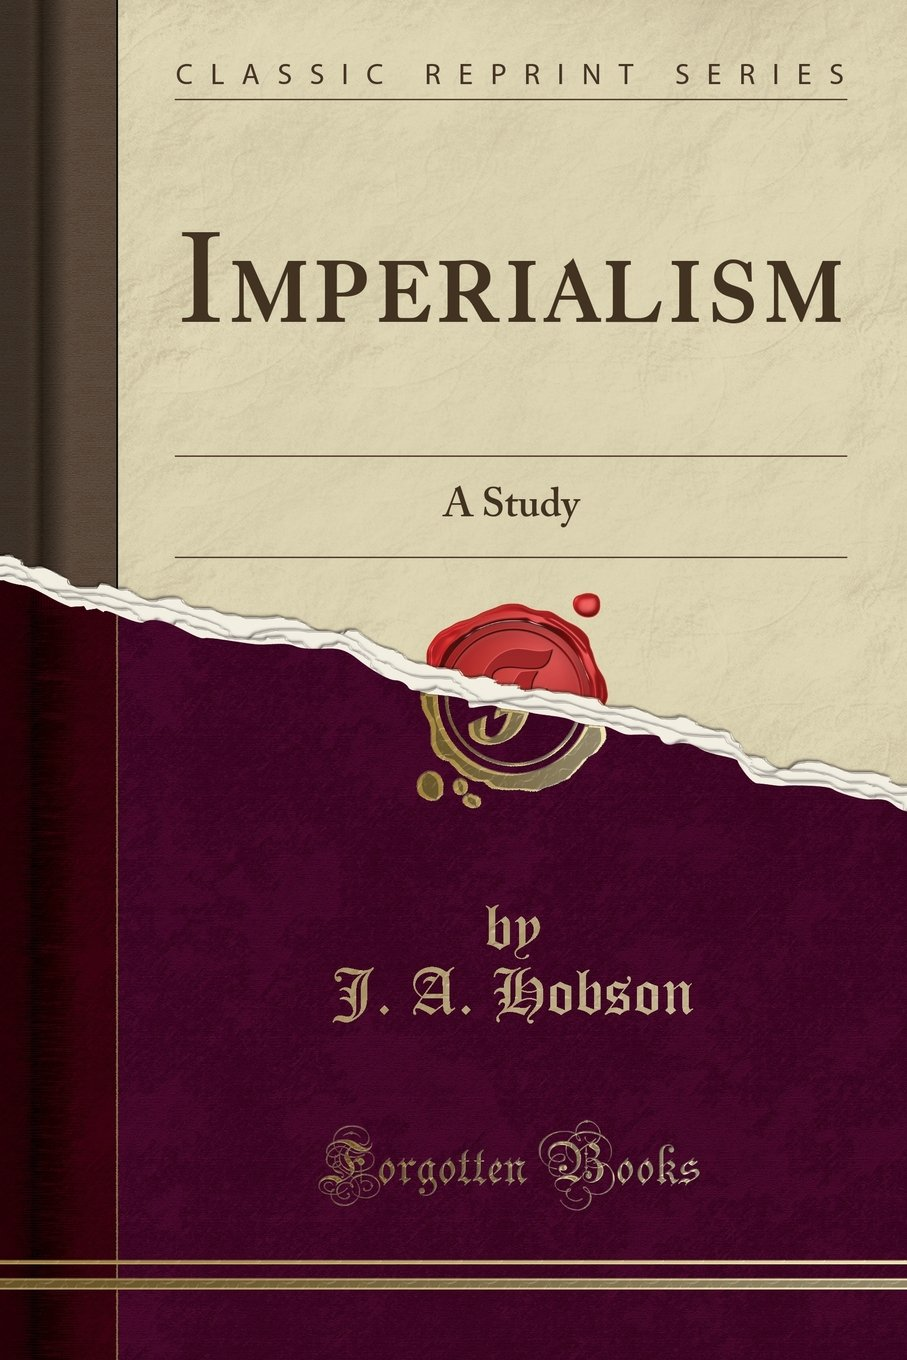 Why should we still study J. A. Hobson's Imperialism?